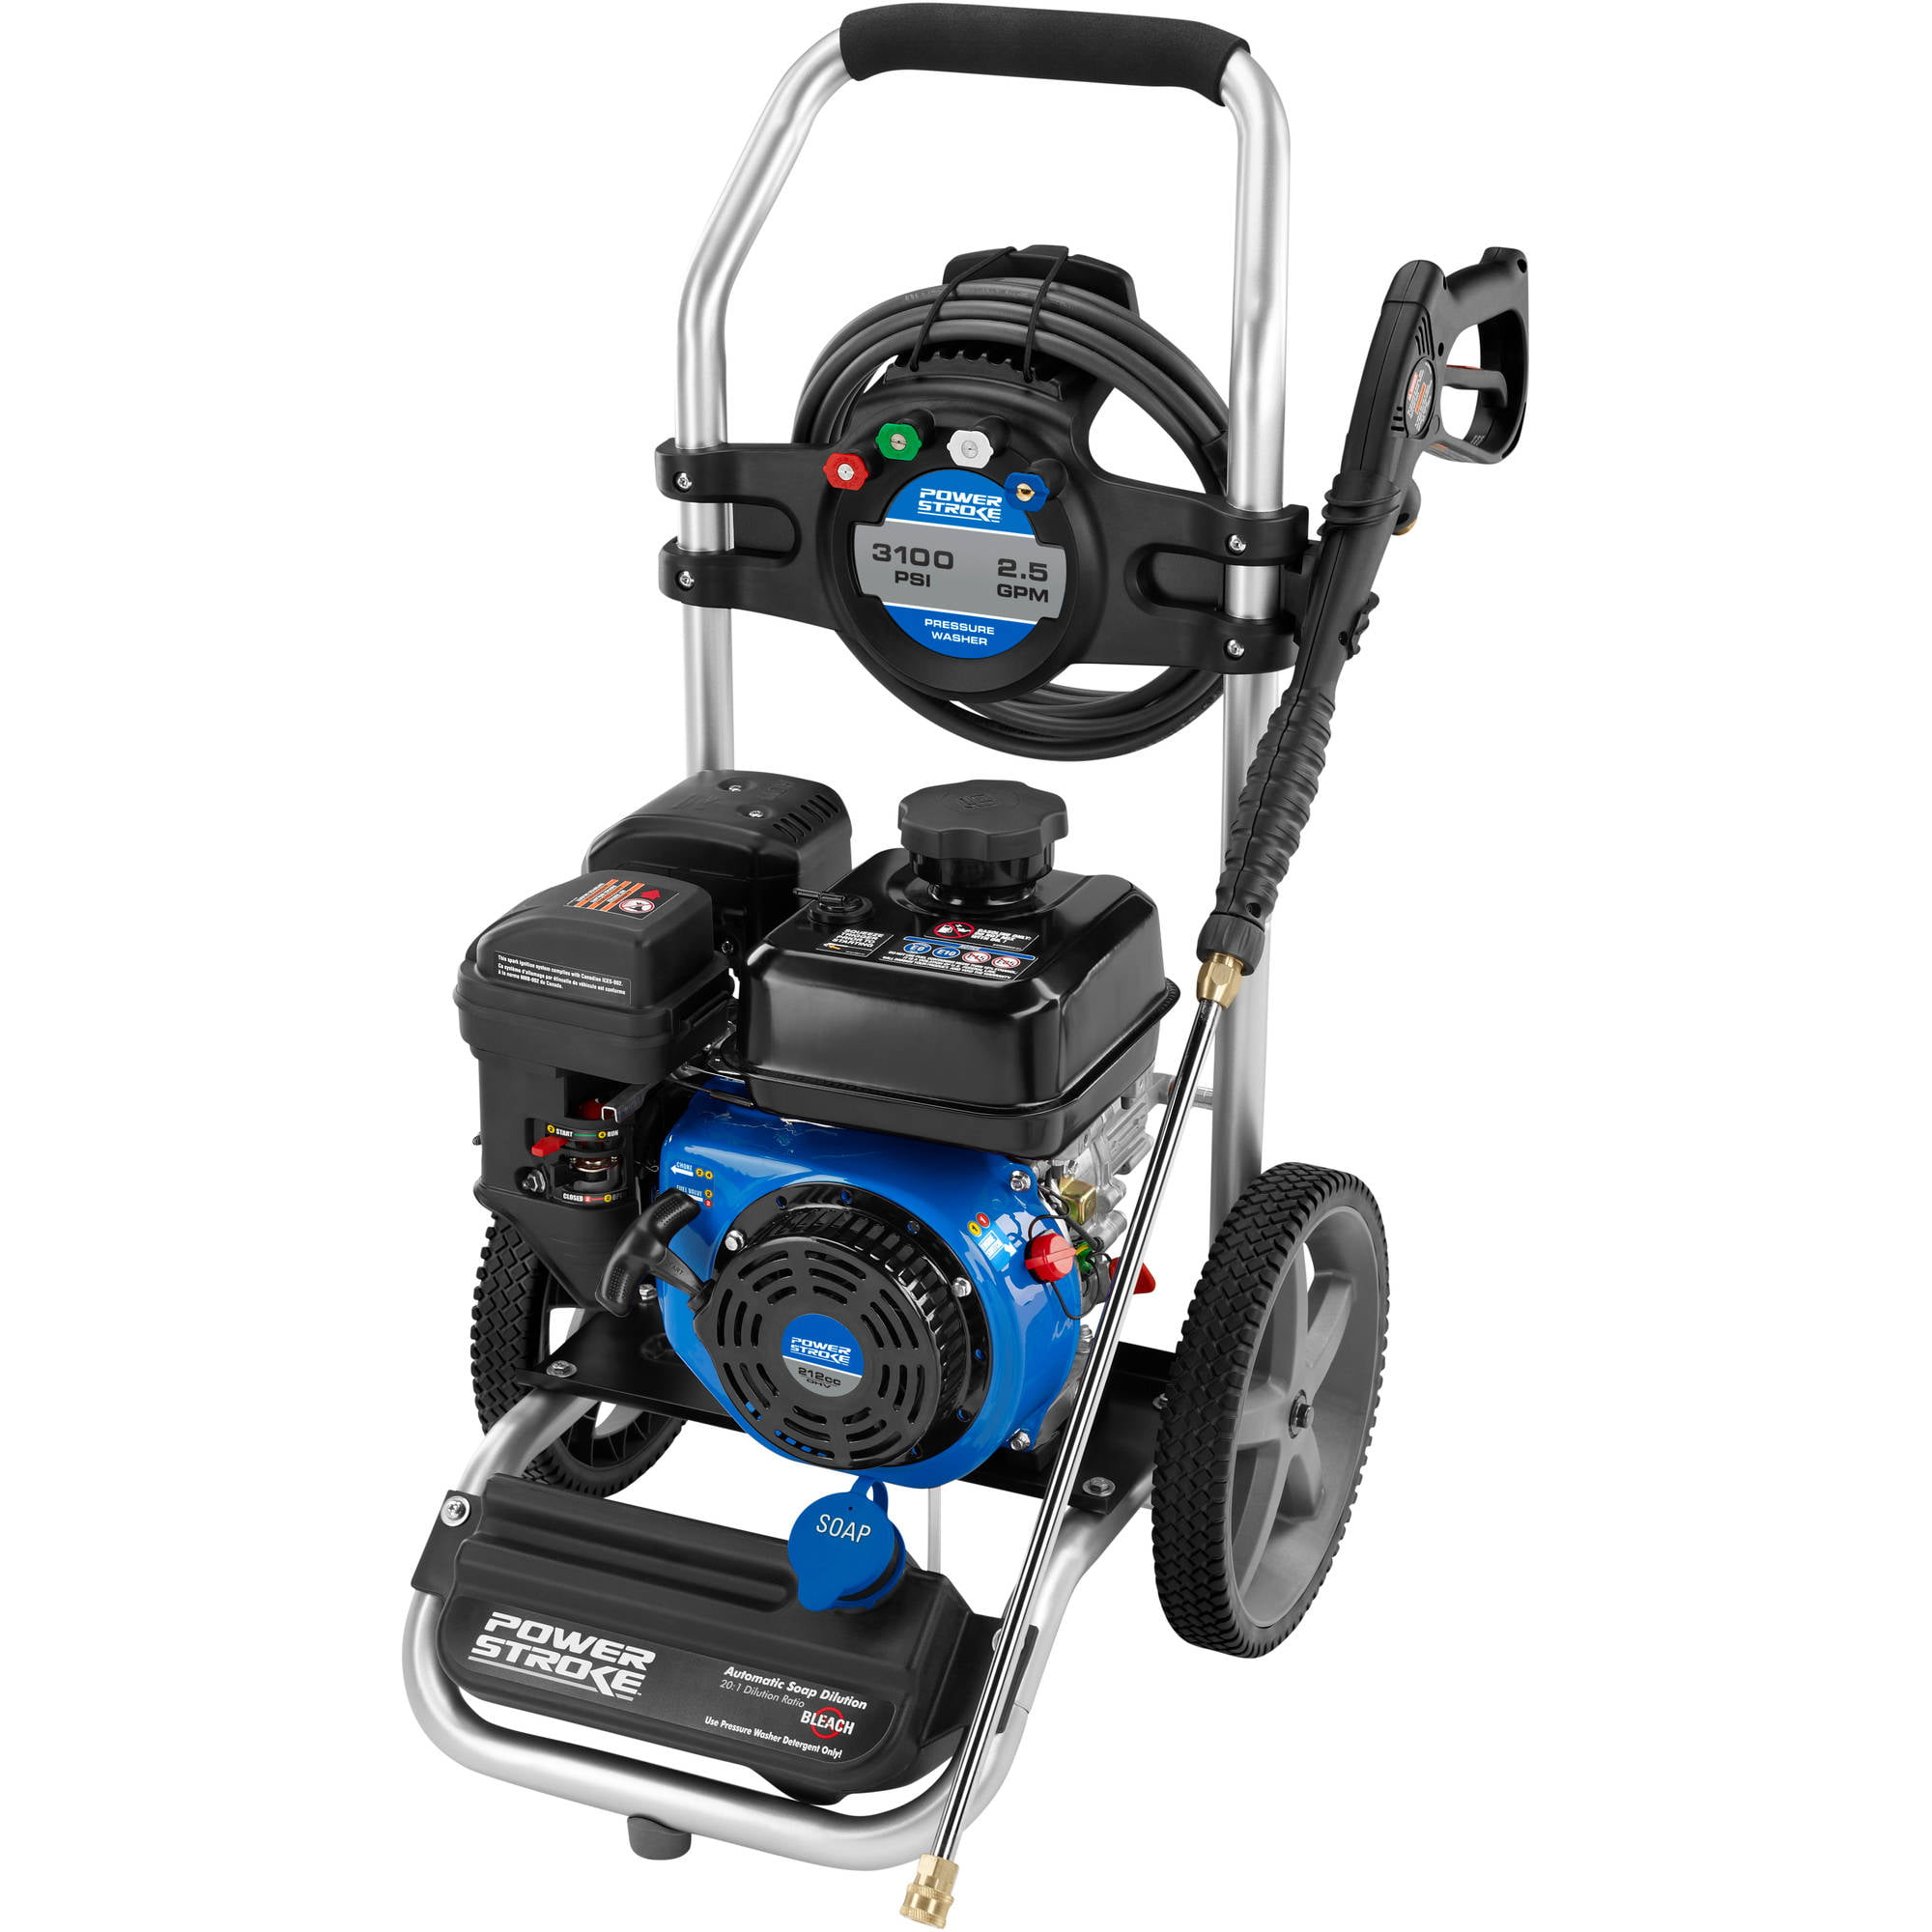 PowerStroke 3100 PSI Gas Pressure Washer - Walmart com